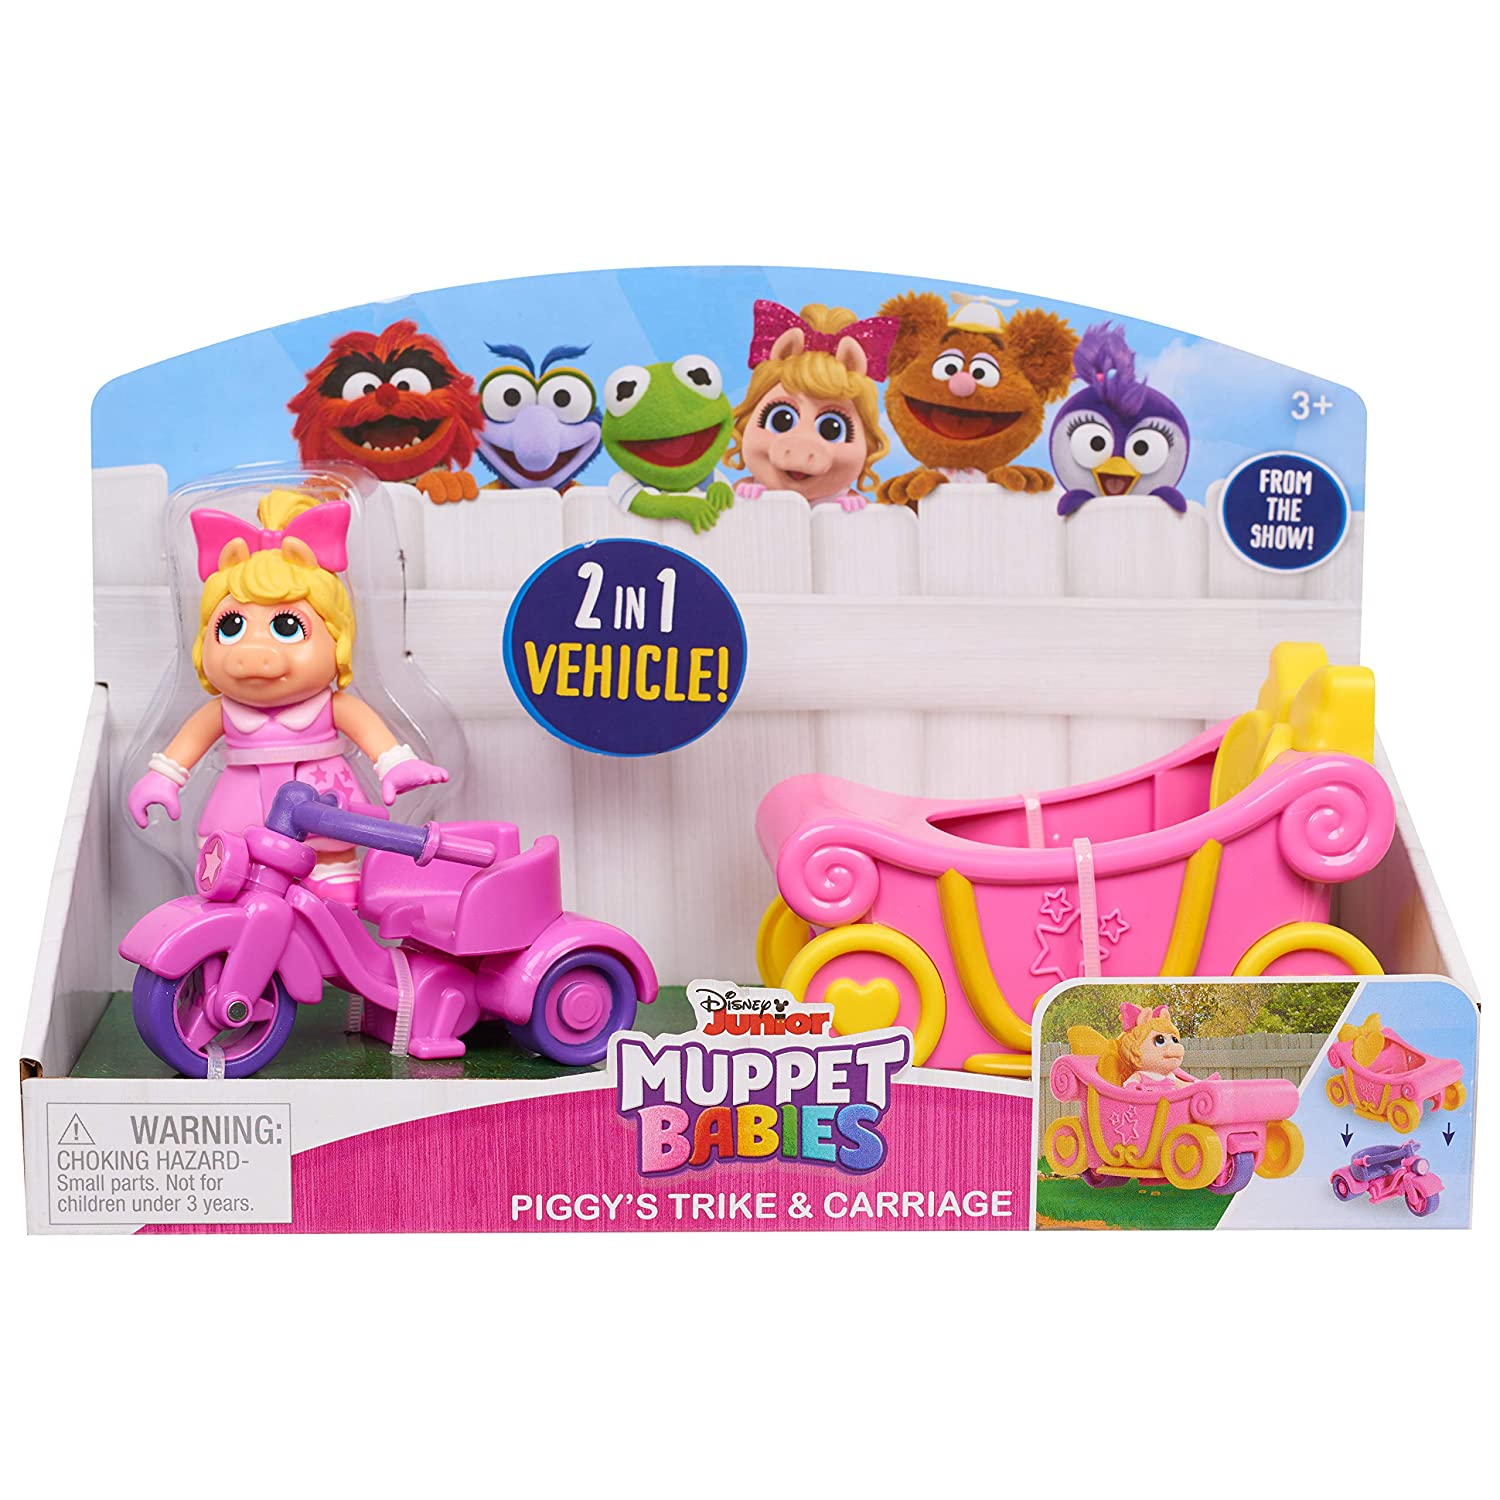 Muppets Babies Piggy N Trike N Carriage Just Play 14432